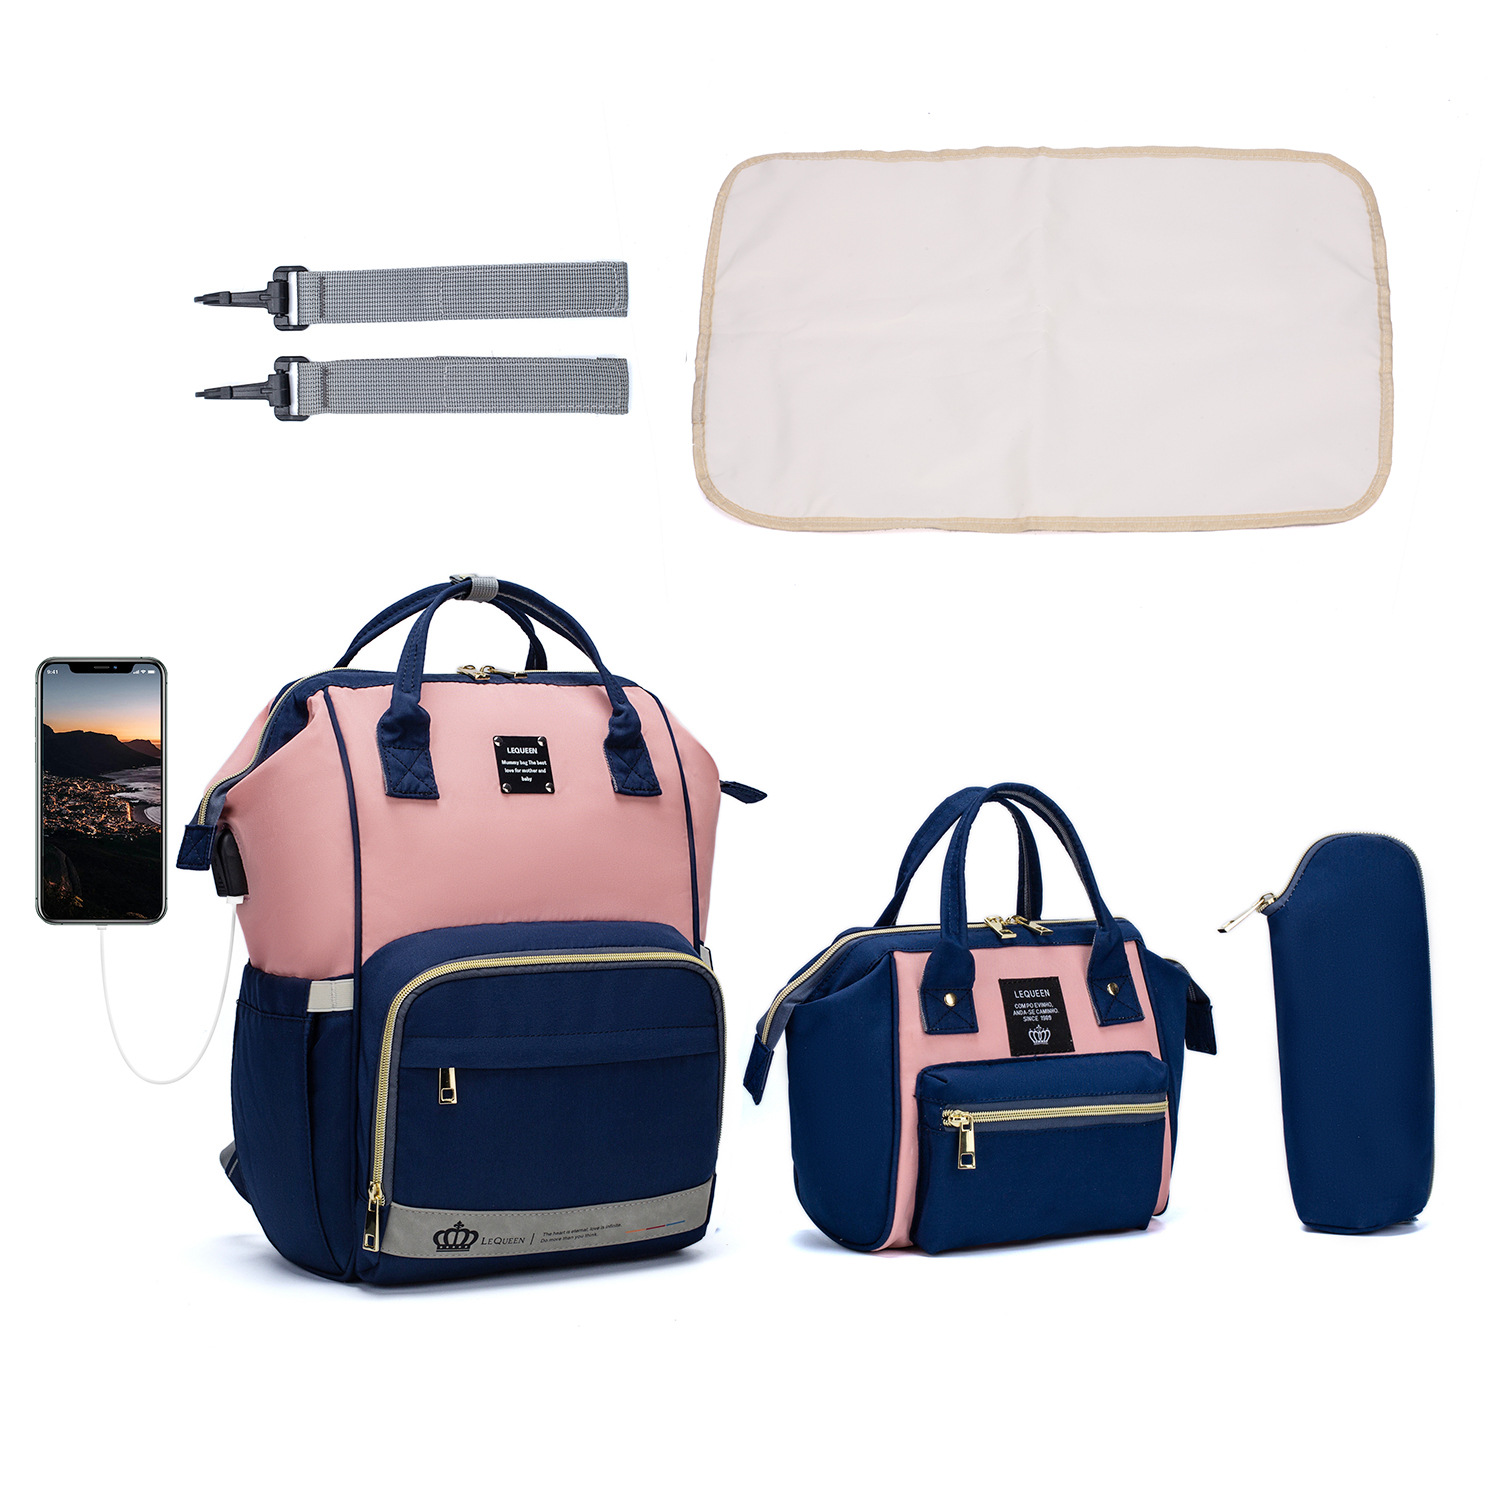 2021 Multifunctional Travel 5 IN 1 Diaper Bag Changing Station Baby Large Capacity Diaper Bags  Backpack For Mothers